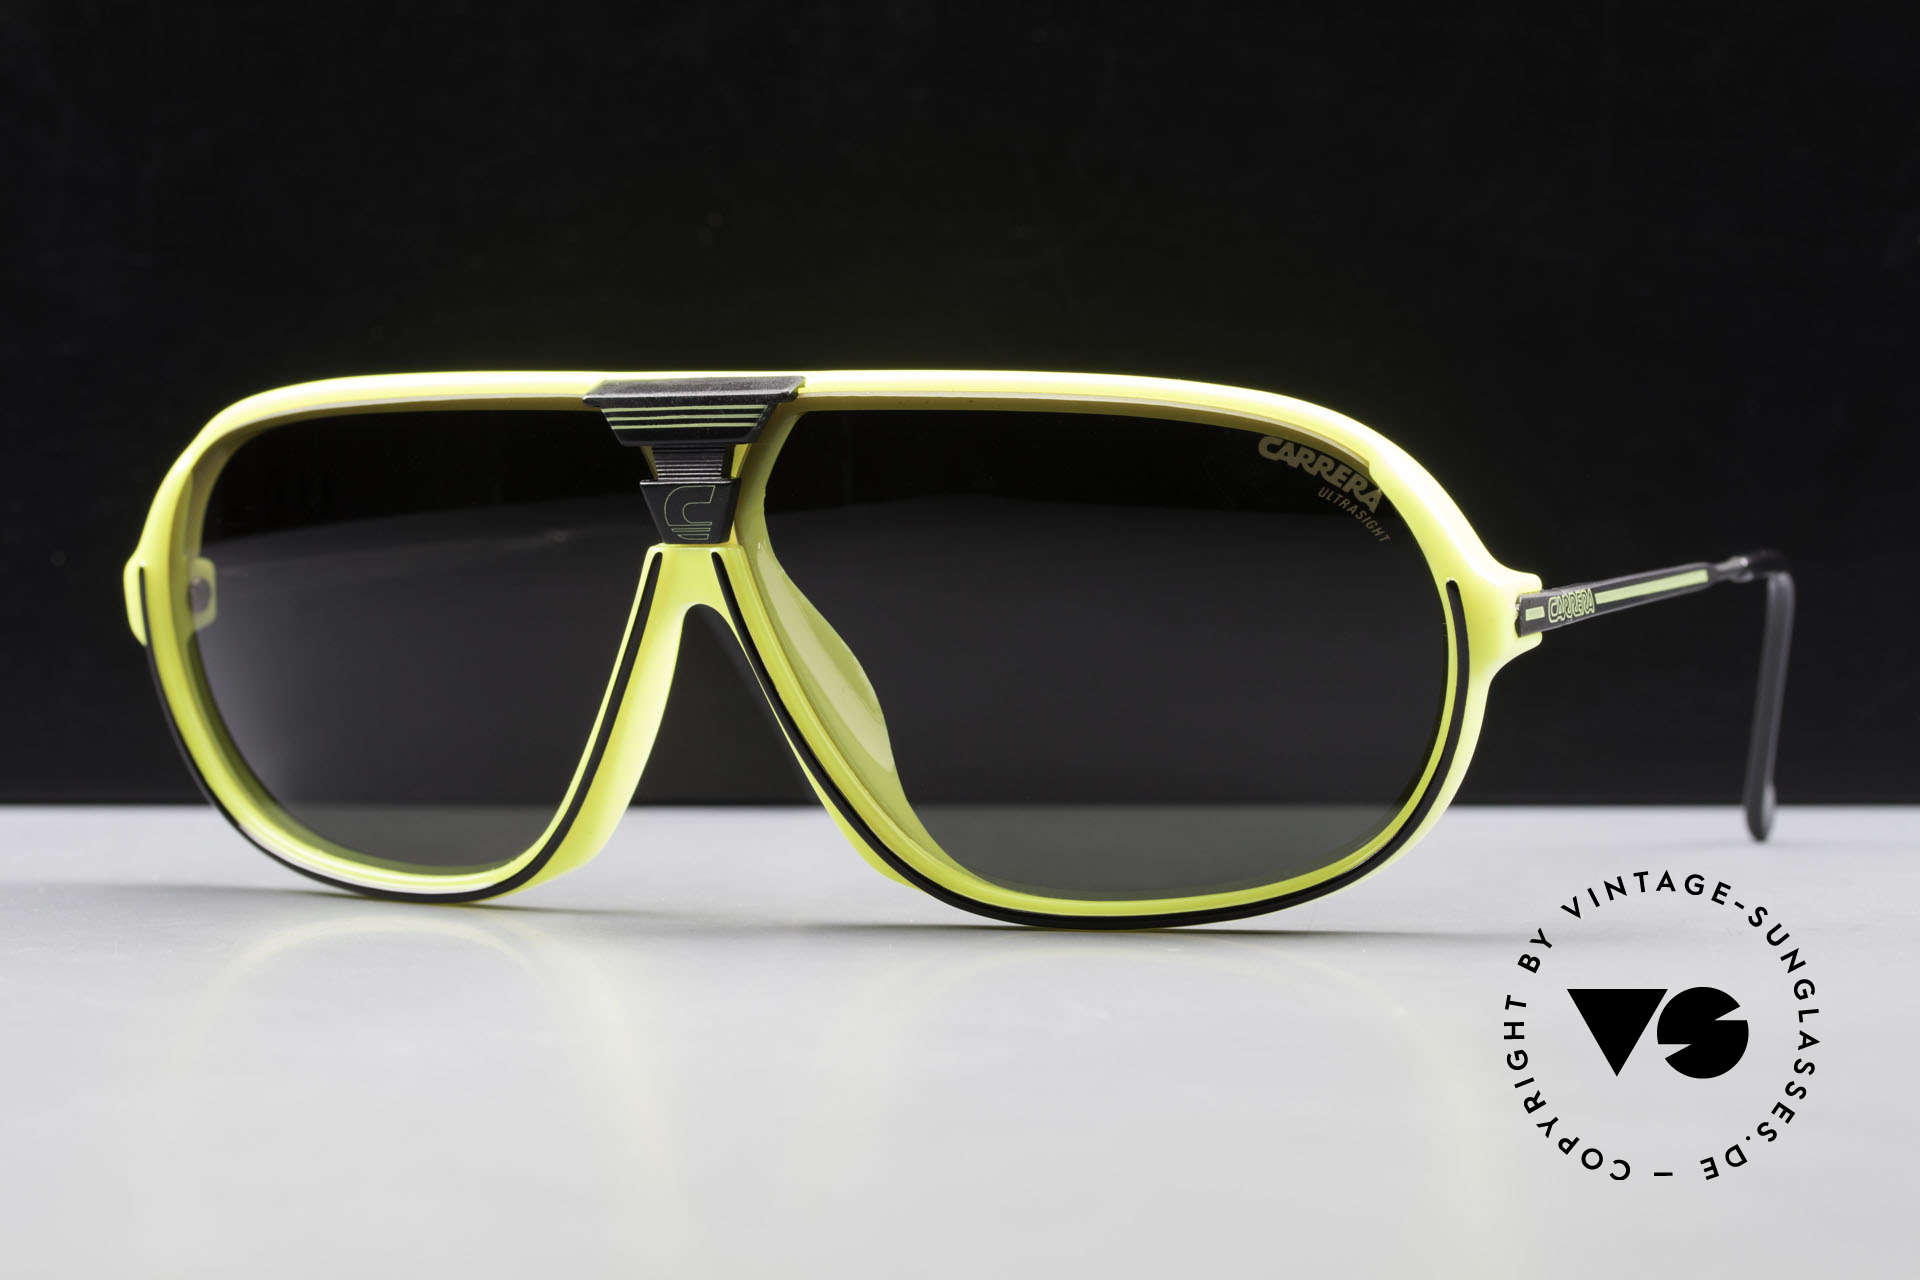 Carrera 5416 80's Shades Polarized Lenses, state-of-the-art lenses (2 sets) & with orig. case, Made for Men